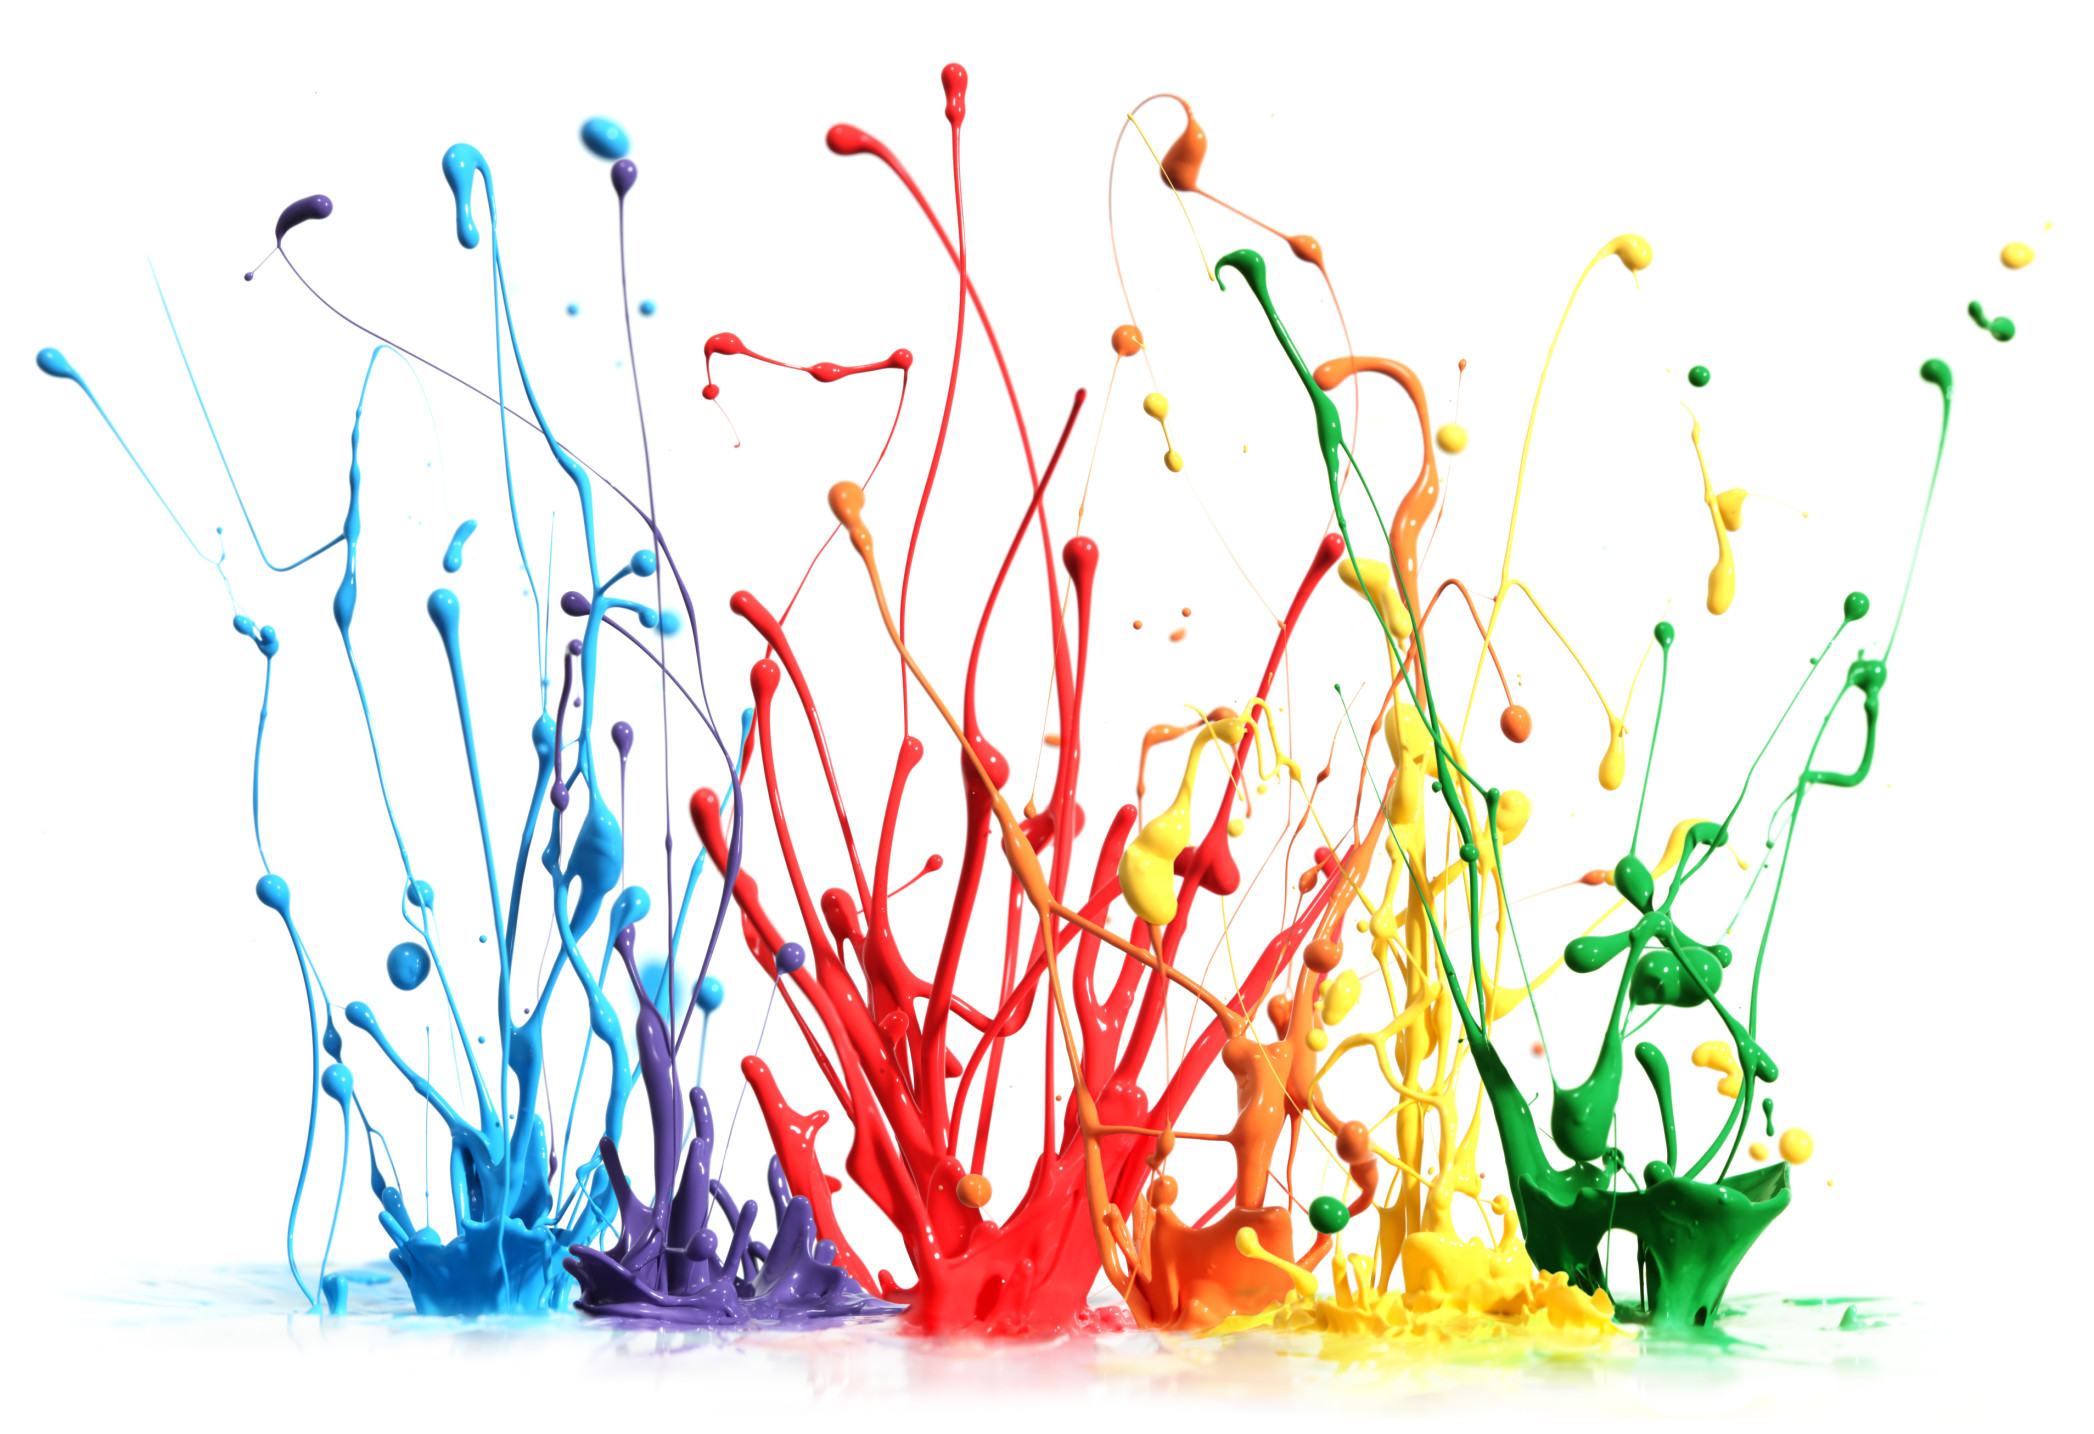 Cool 3d Abstract Wallpapers Paint Splatter Wallpaper 73 Images